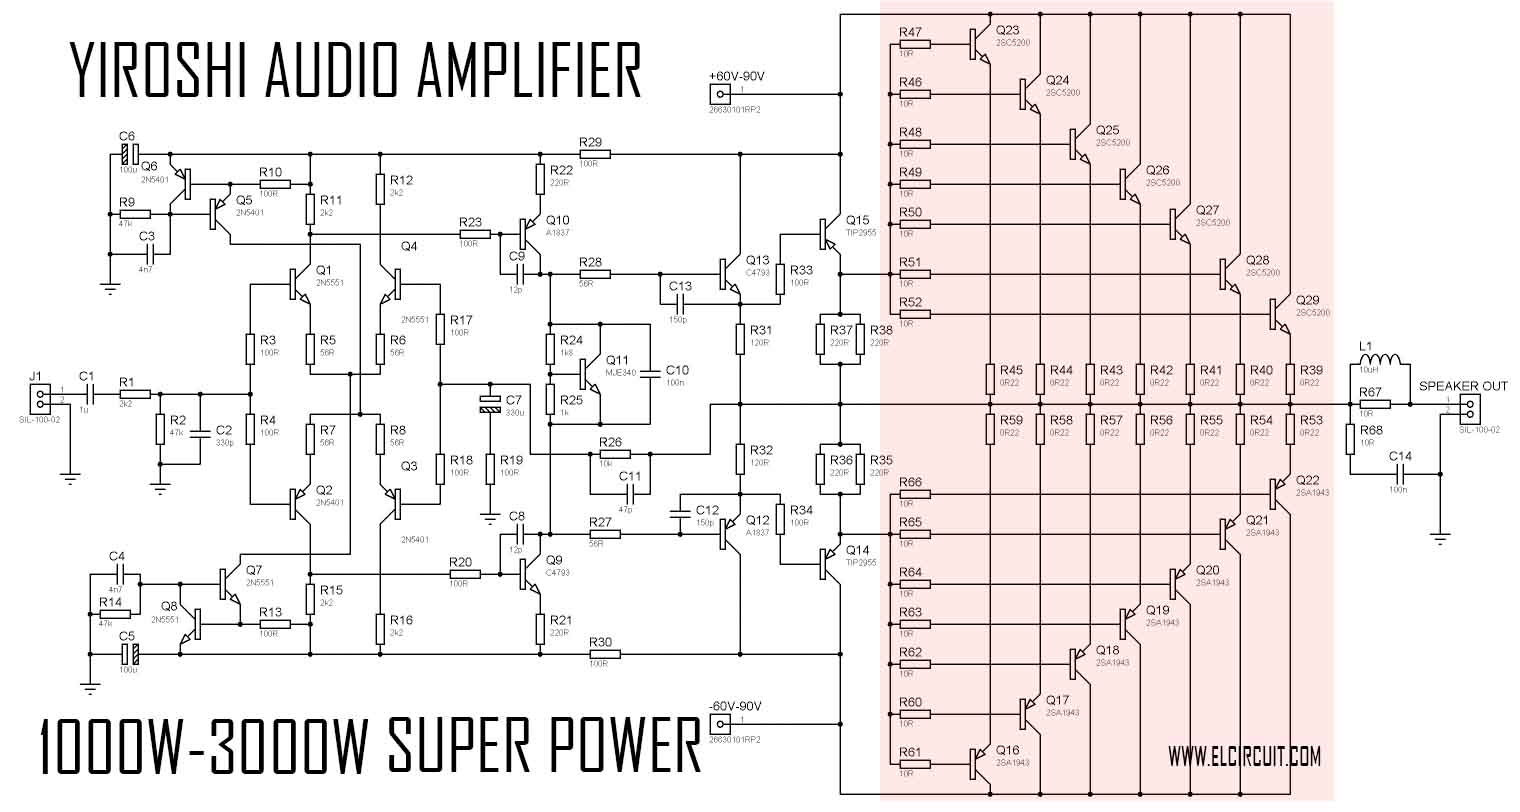 1000 Watts Power Amplifier Schematic Diagrams List Of 2003 Sterling Wiring Diagram Stereo Super Yiroshi Audio Watt Electronic Circuit Rh Elcircuit Com